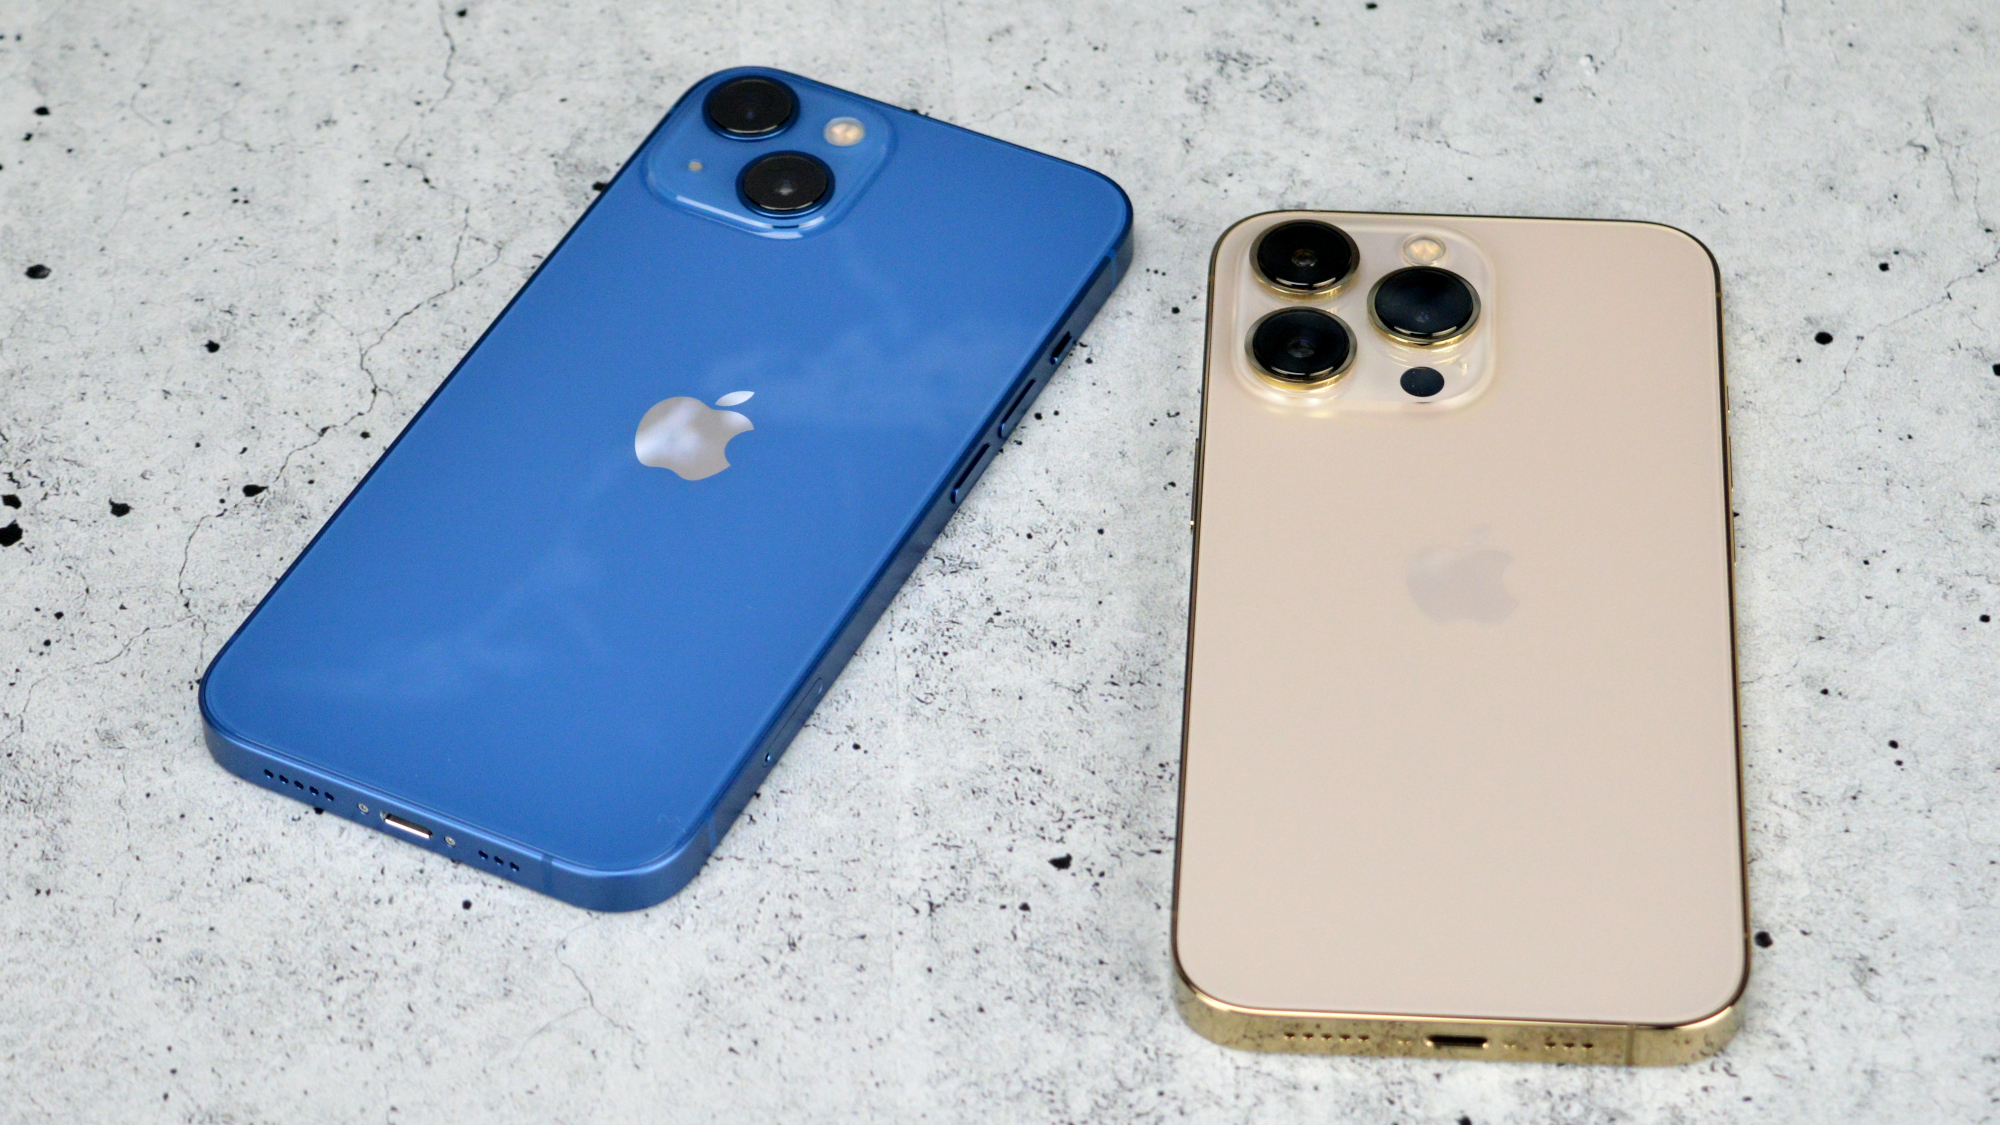 Apple iPhone 13 and 13 Pro